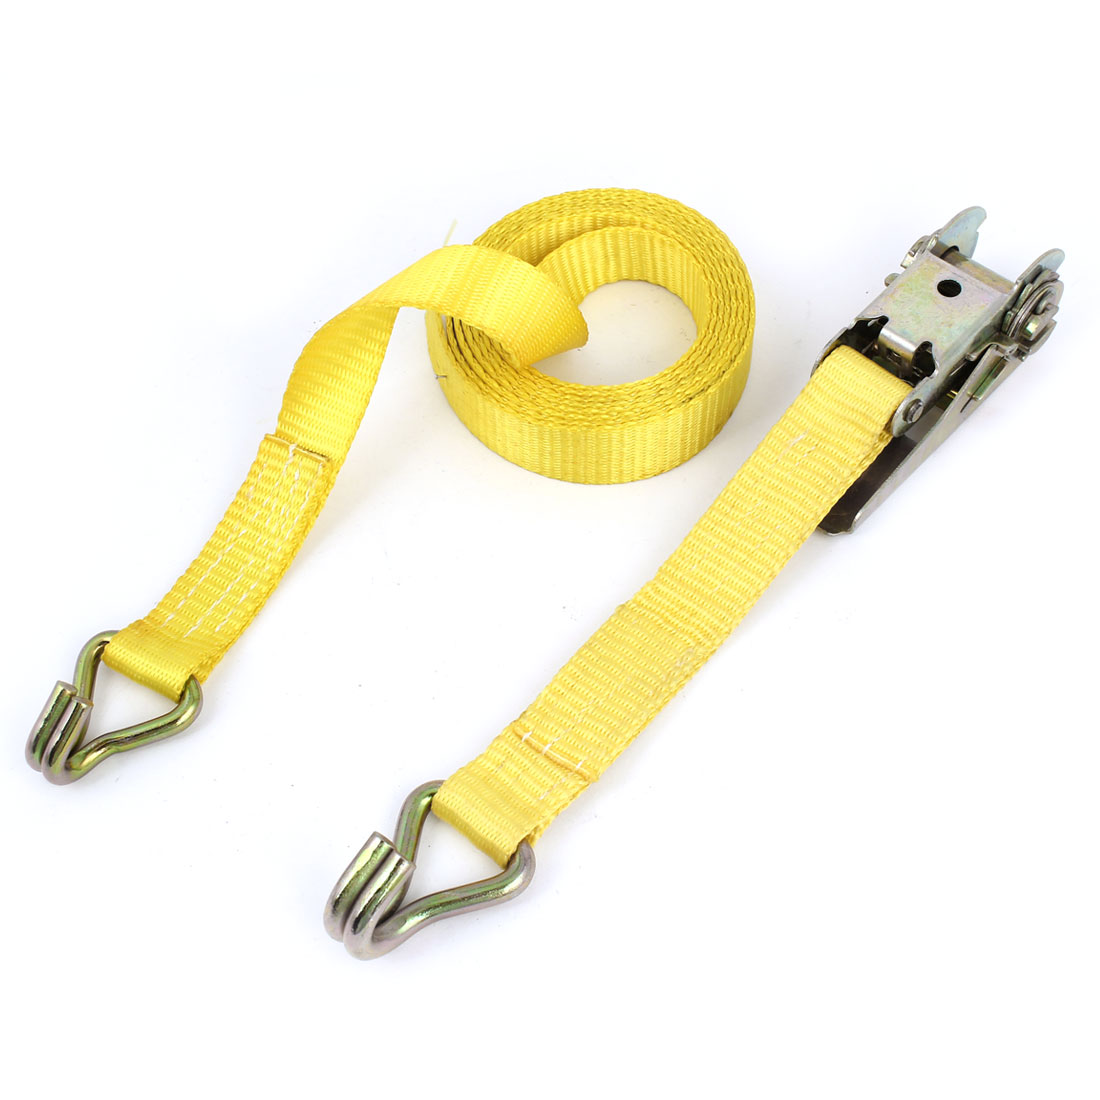 Truck 1500 lbs Dual Hooks Ratchet Tie Down Strap 2.5m Long 25mm Width